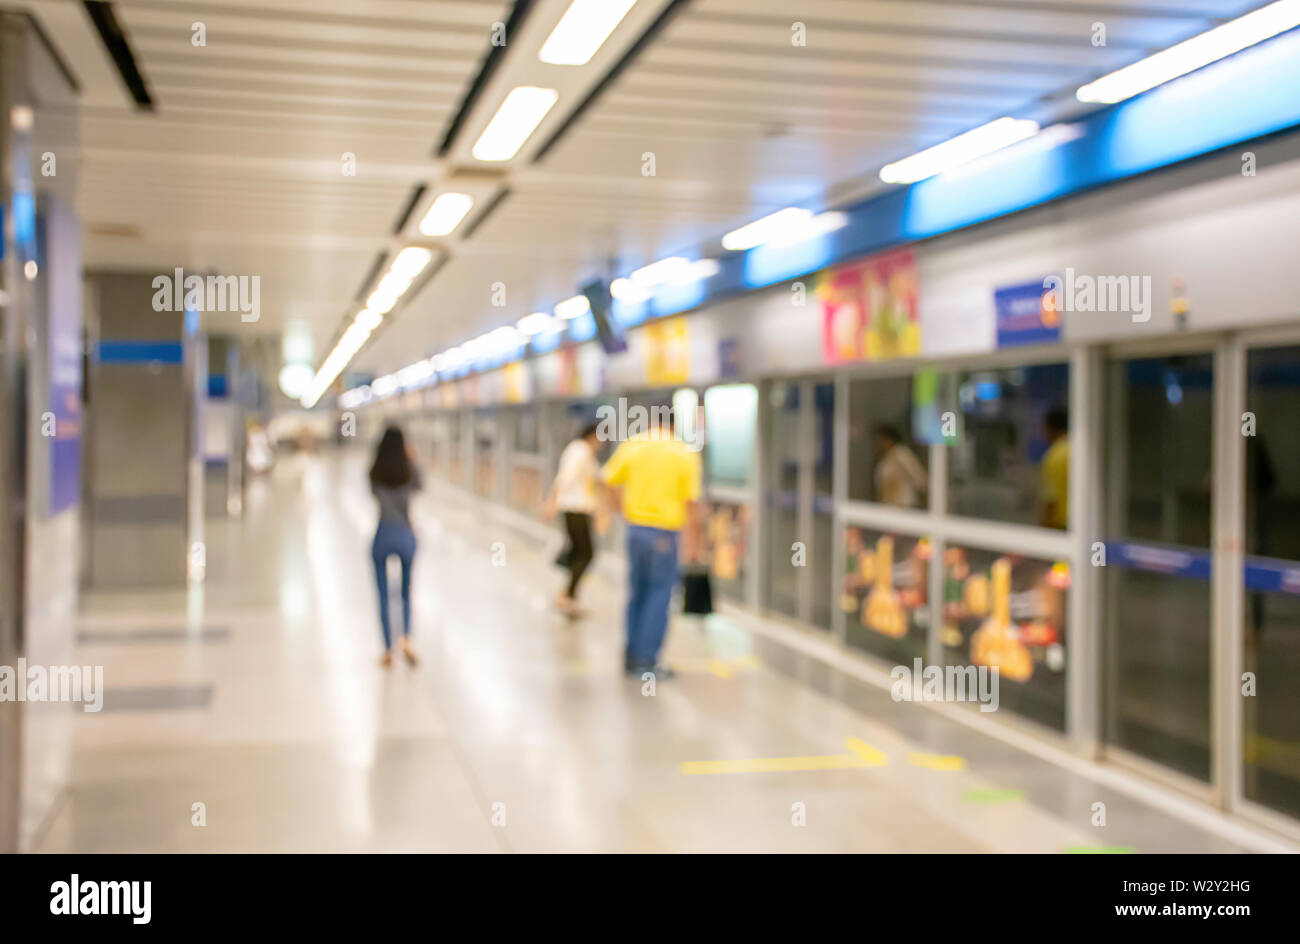 Blurry image of a passenger stand waiting for the subway - Stock Image